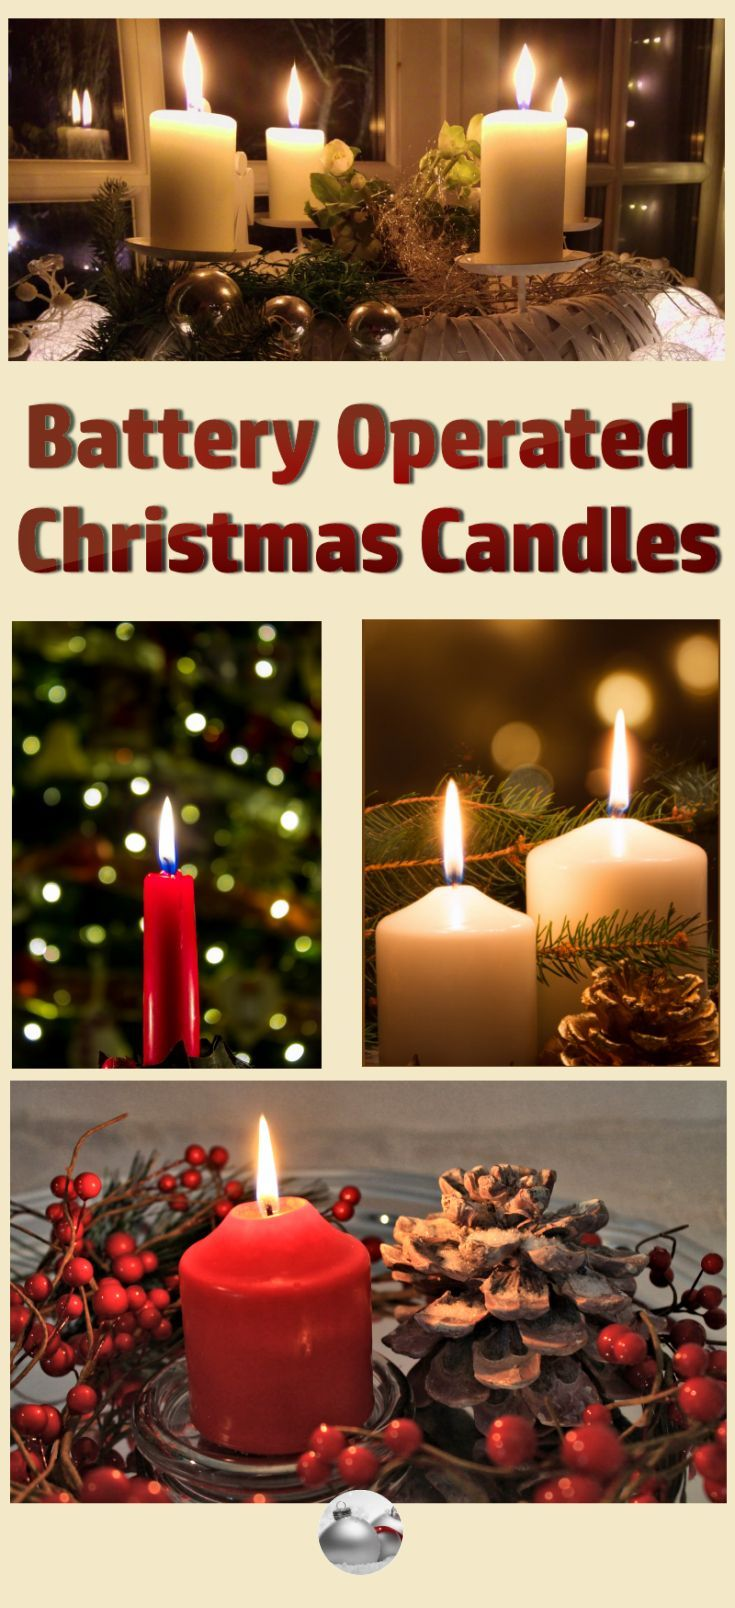 battery operated christmas candles country christmas decorating ideas pinterest battery operated - Battery Operated Christmas Candles